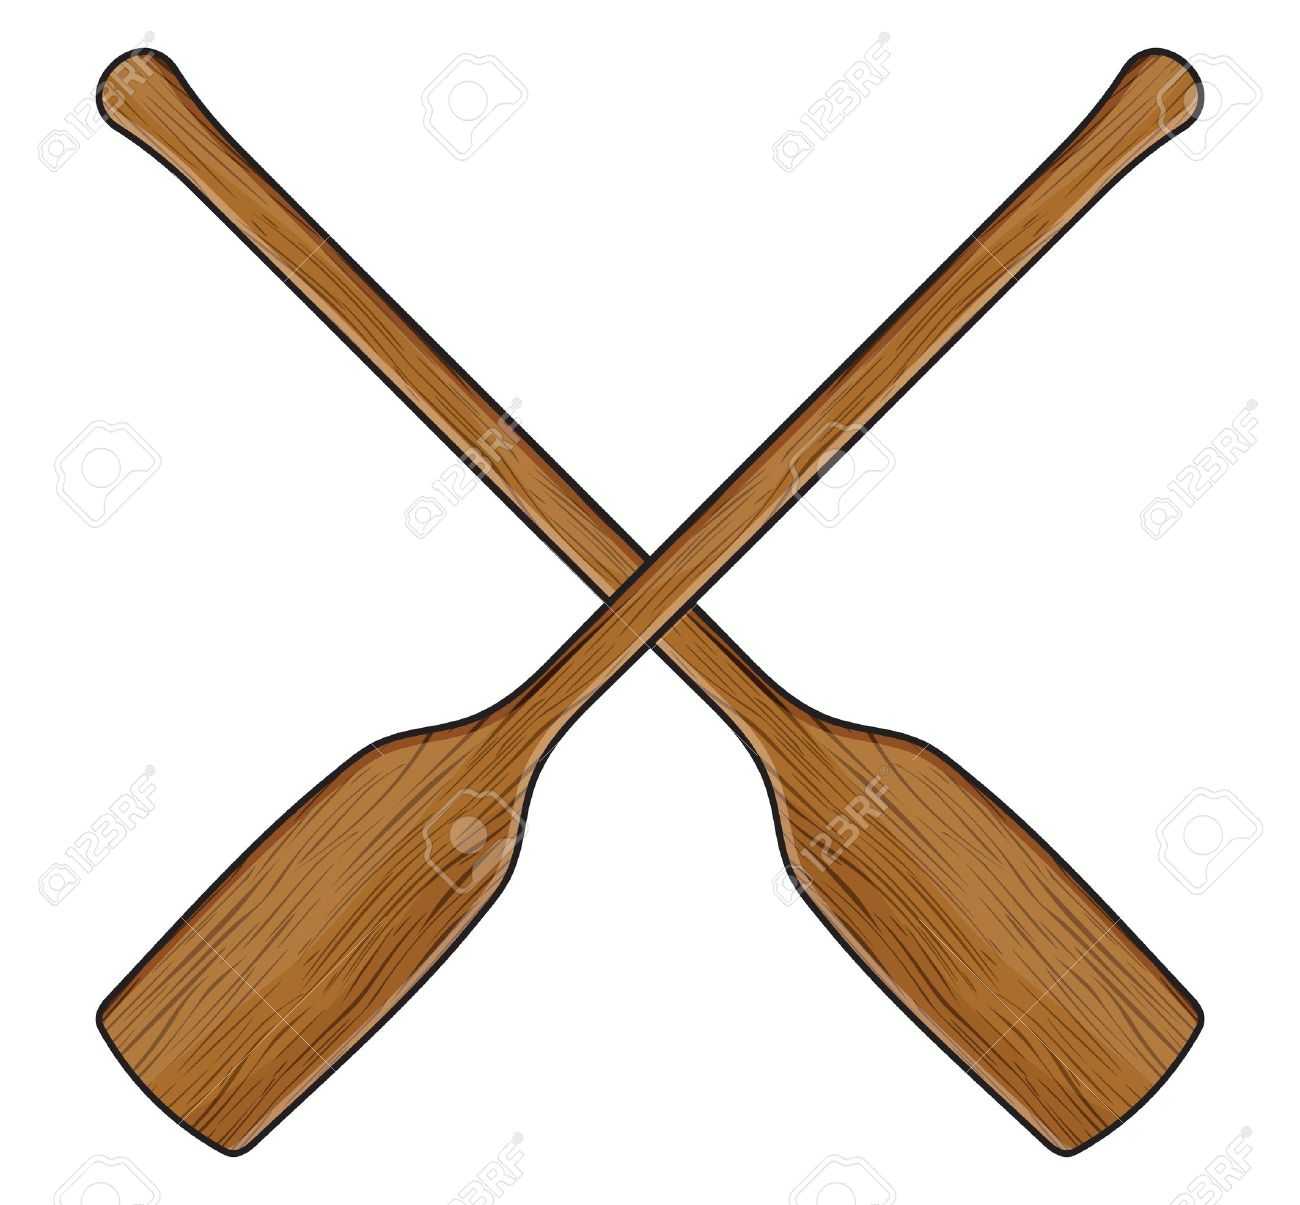 Canoe paddle clipart 4 » Clipart Station.